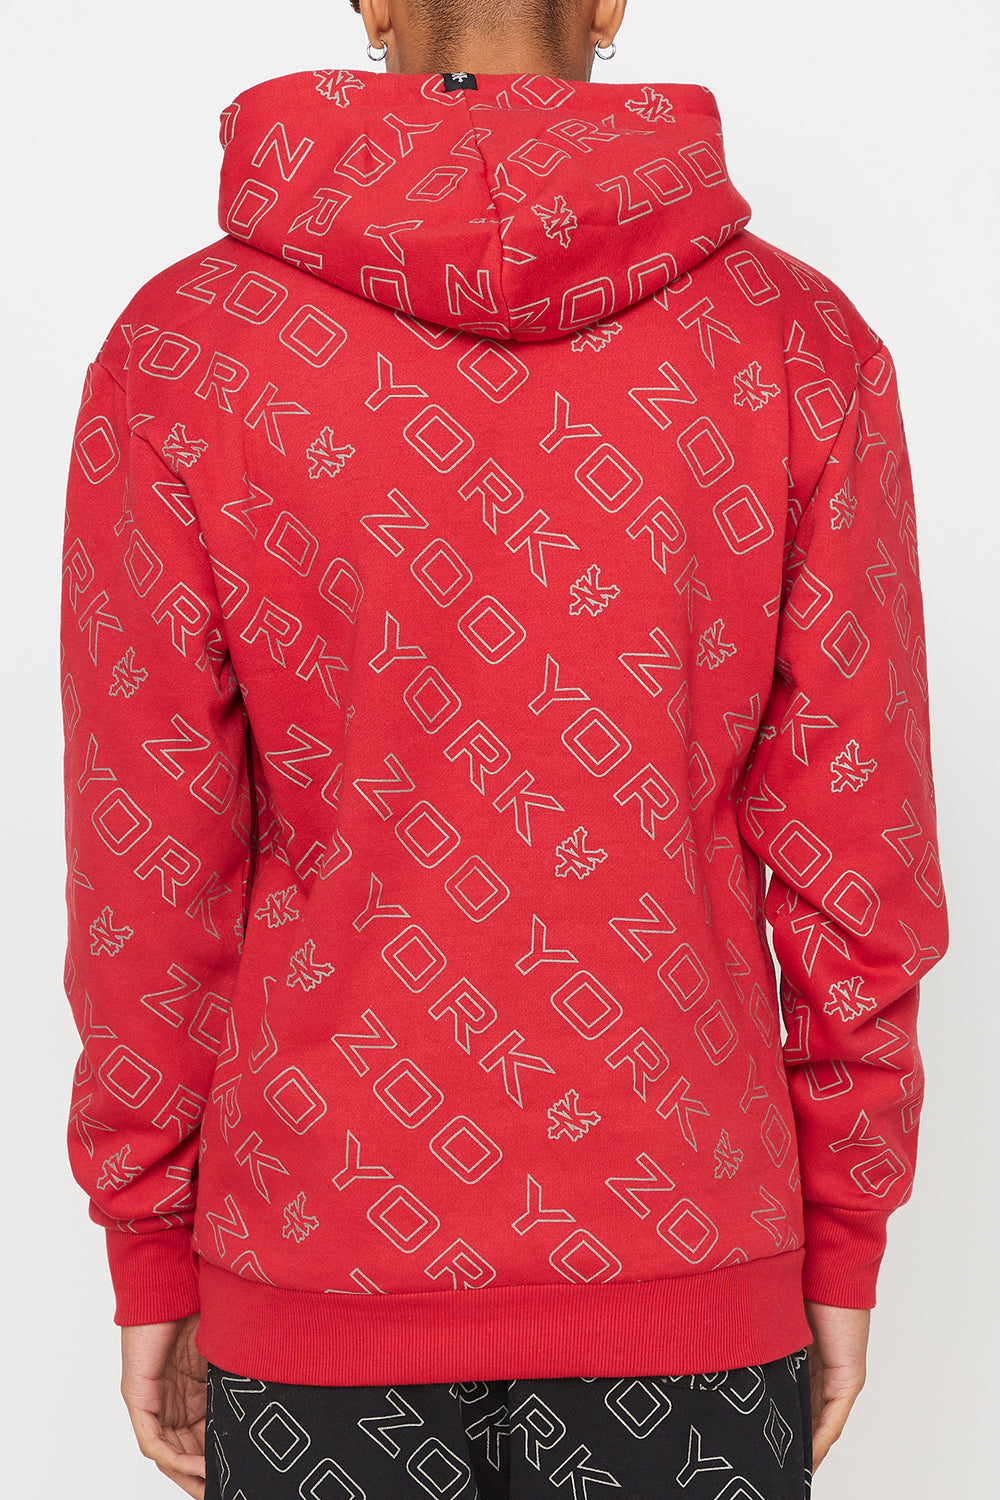 Zoo York Mens Reflective Hoodie Red